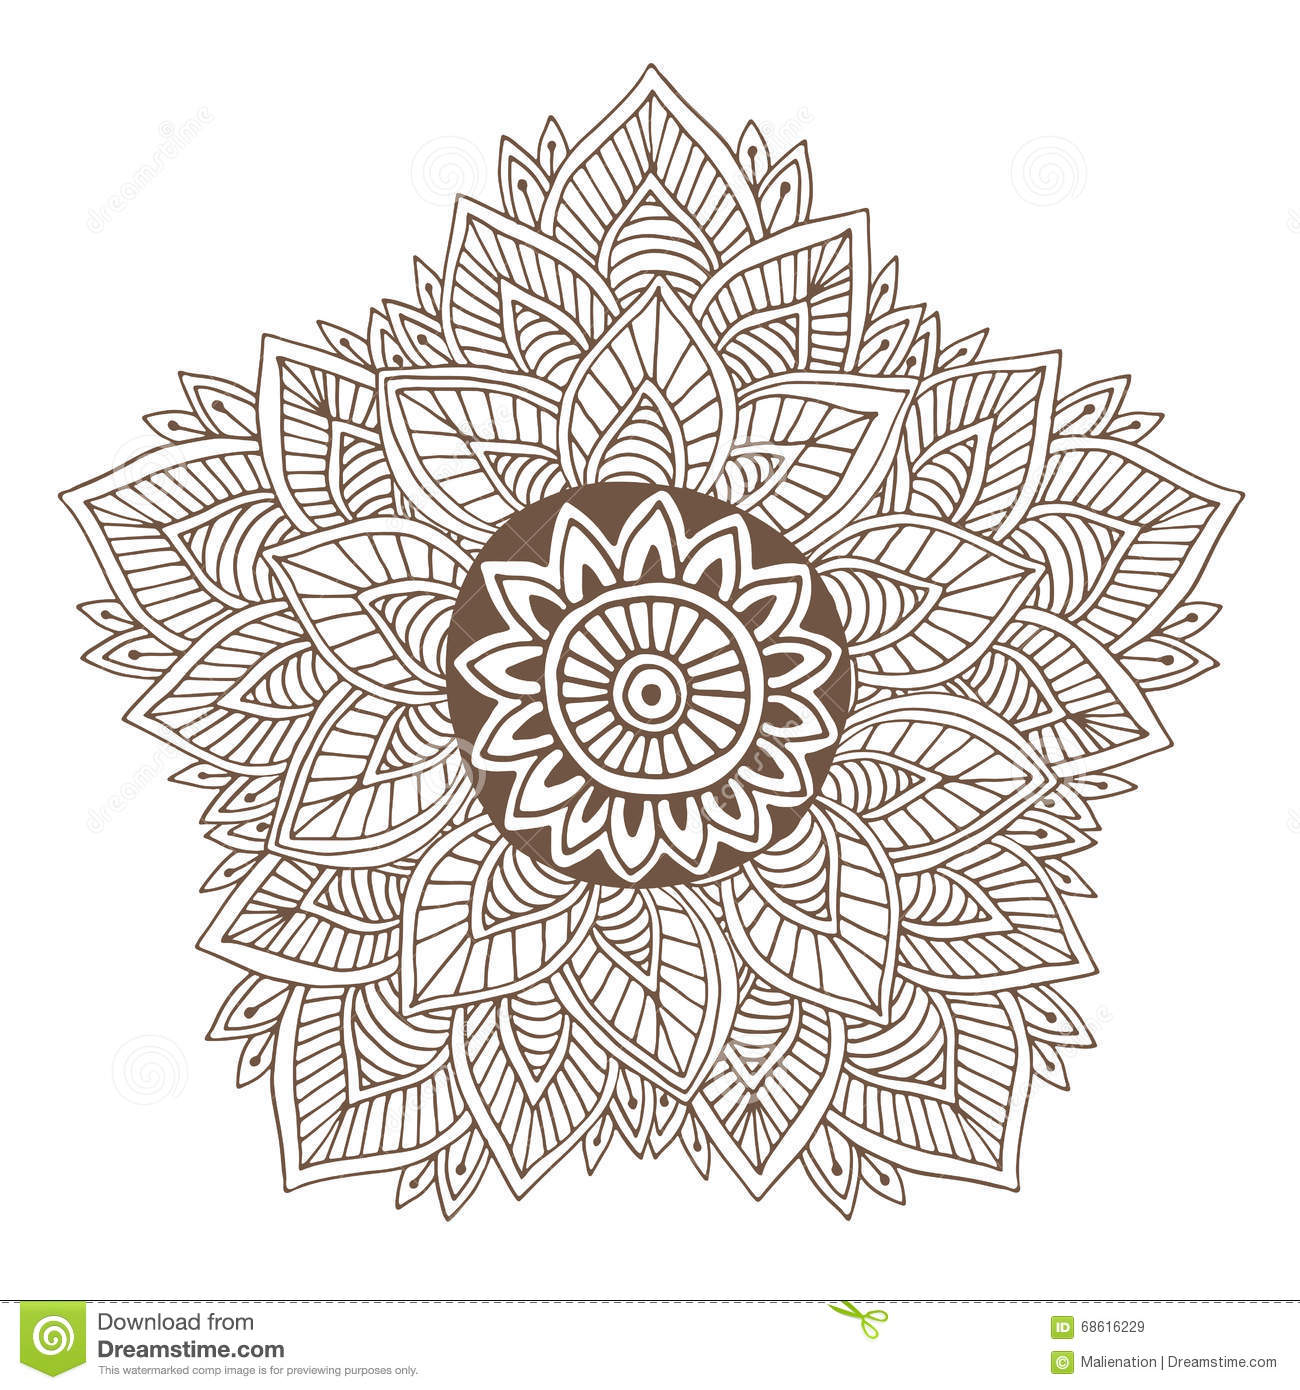 conception de tatouage de mandala ou de henn de vecteur rond ornemental pour des pages de - Henn Ou Coloration